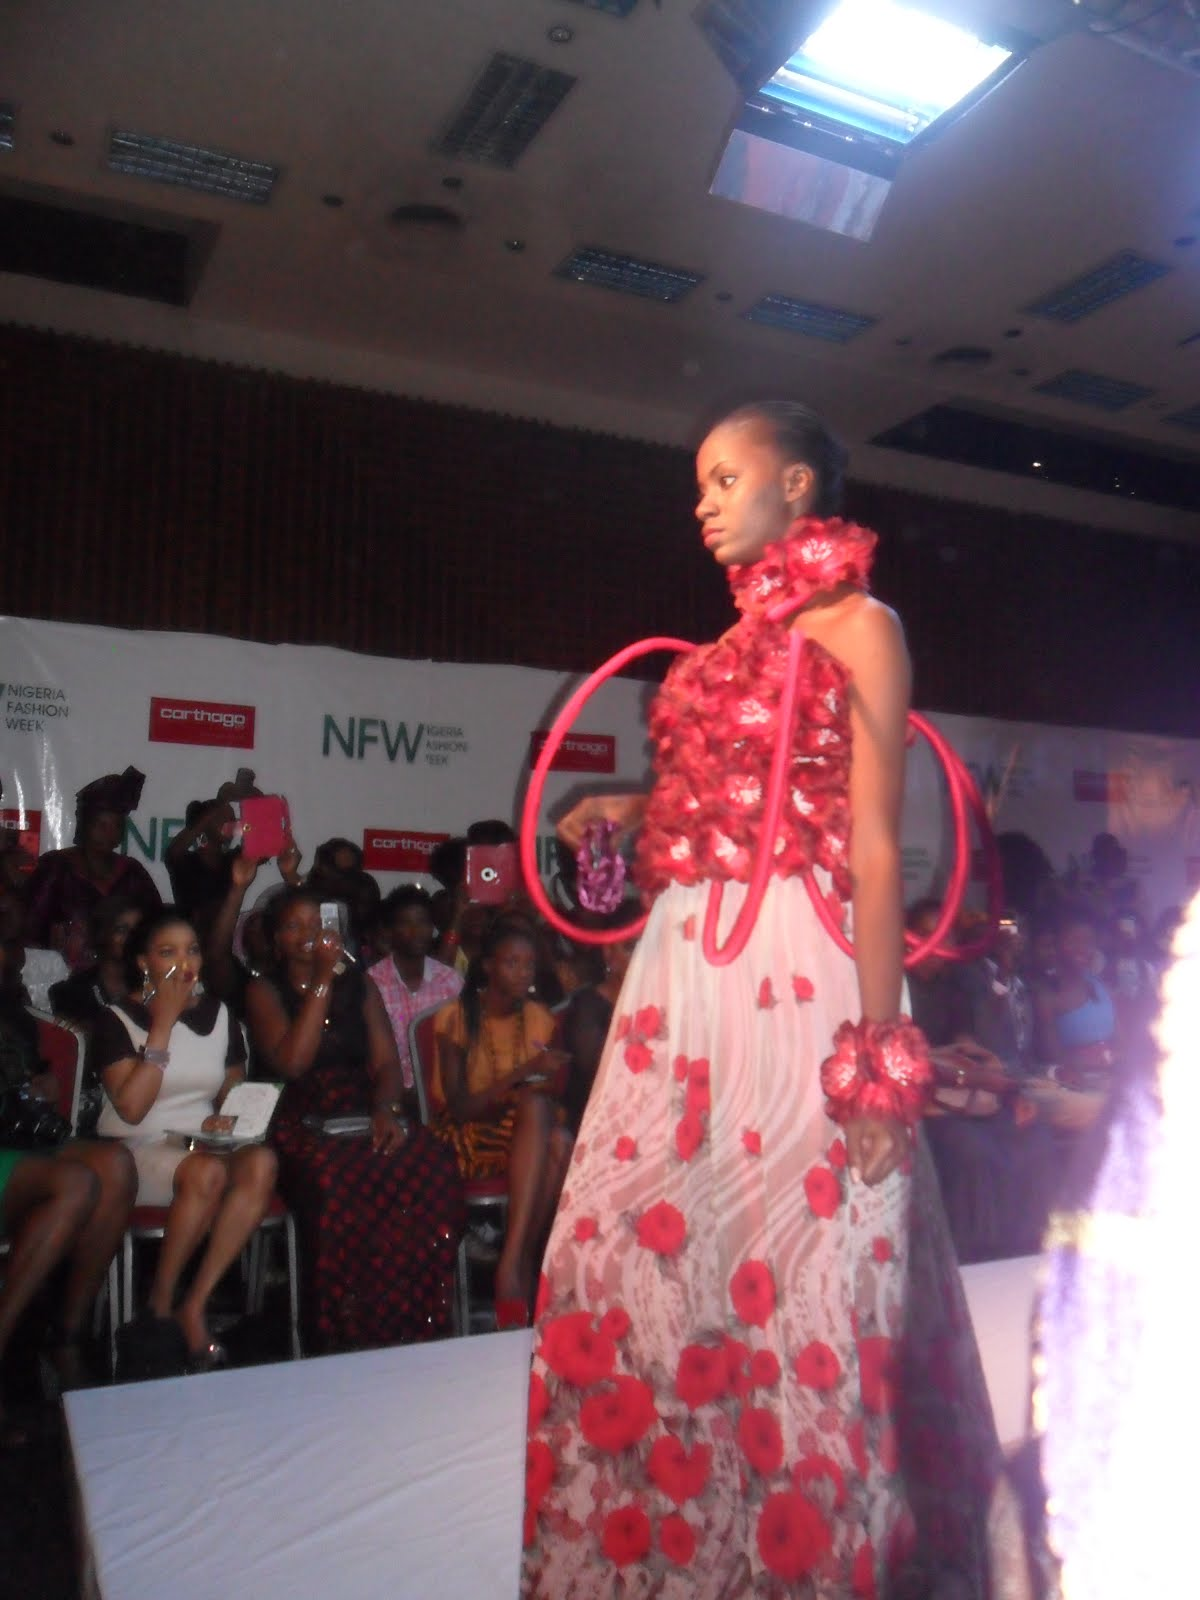 welcome to cindy amos blog the ia fashion week 2012 our modest contribution to the search of answers to some of the questions above led us to the going green 2 this year other activities are planned in